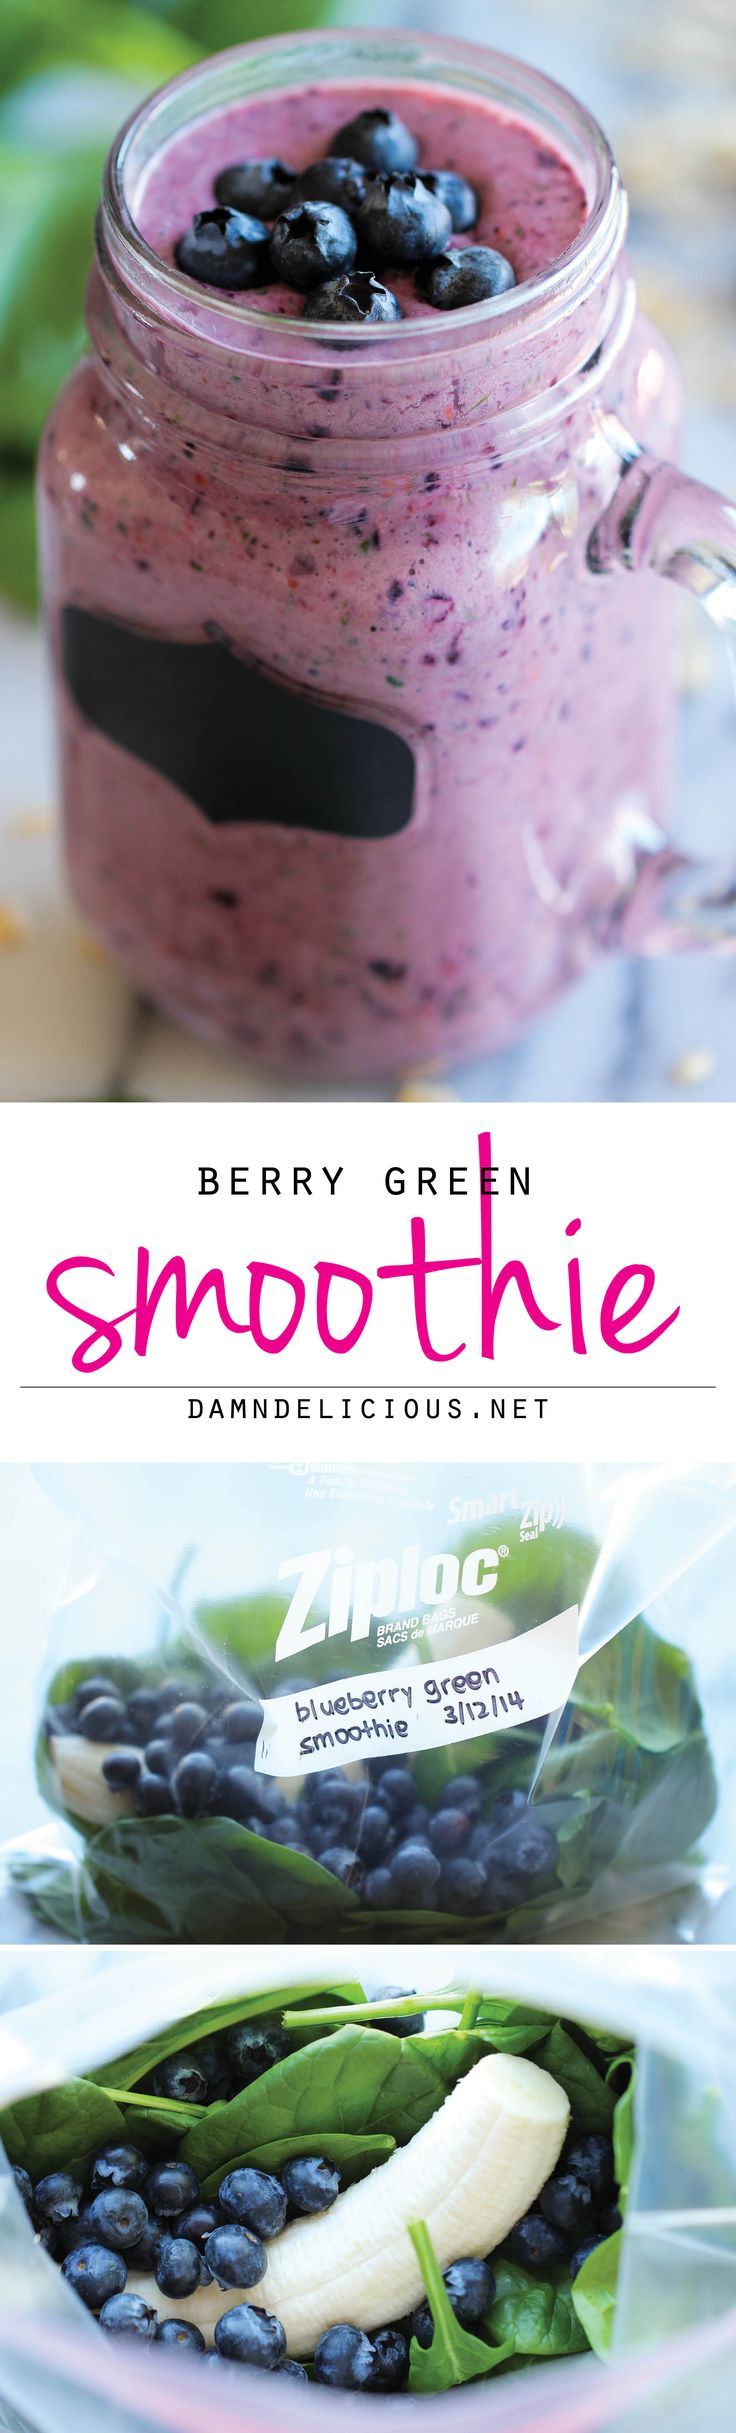 Berry Green Smoothie - Make-ahead freezer friendly smoothies that are healthy. I will use AGAVE or HONEY, instead of sugar and ALMOND Milk